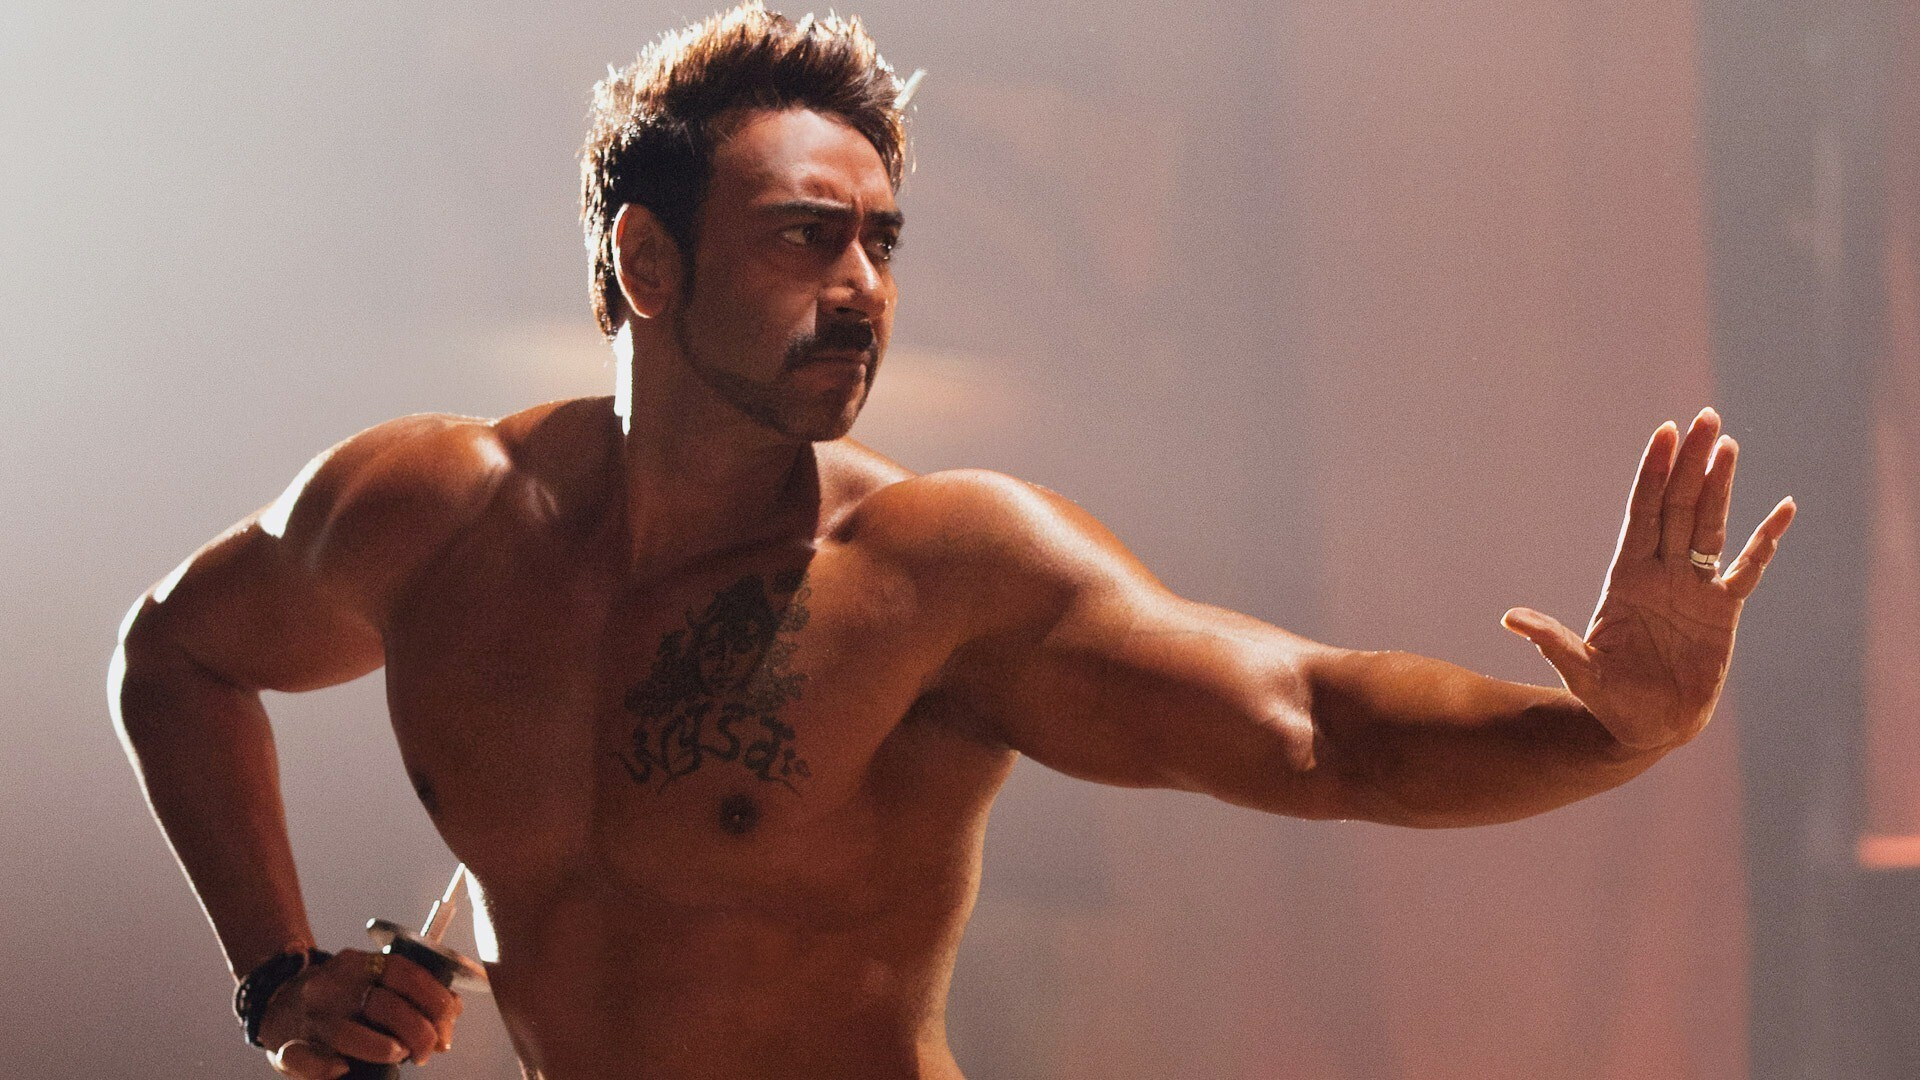 Ajay Devgan Six Pack Abs Body With Tatto Hd Wallpapers Hd Wallpapers